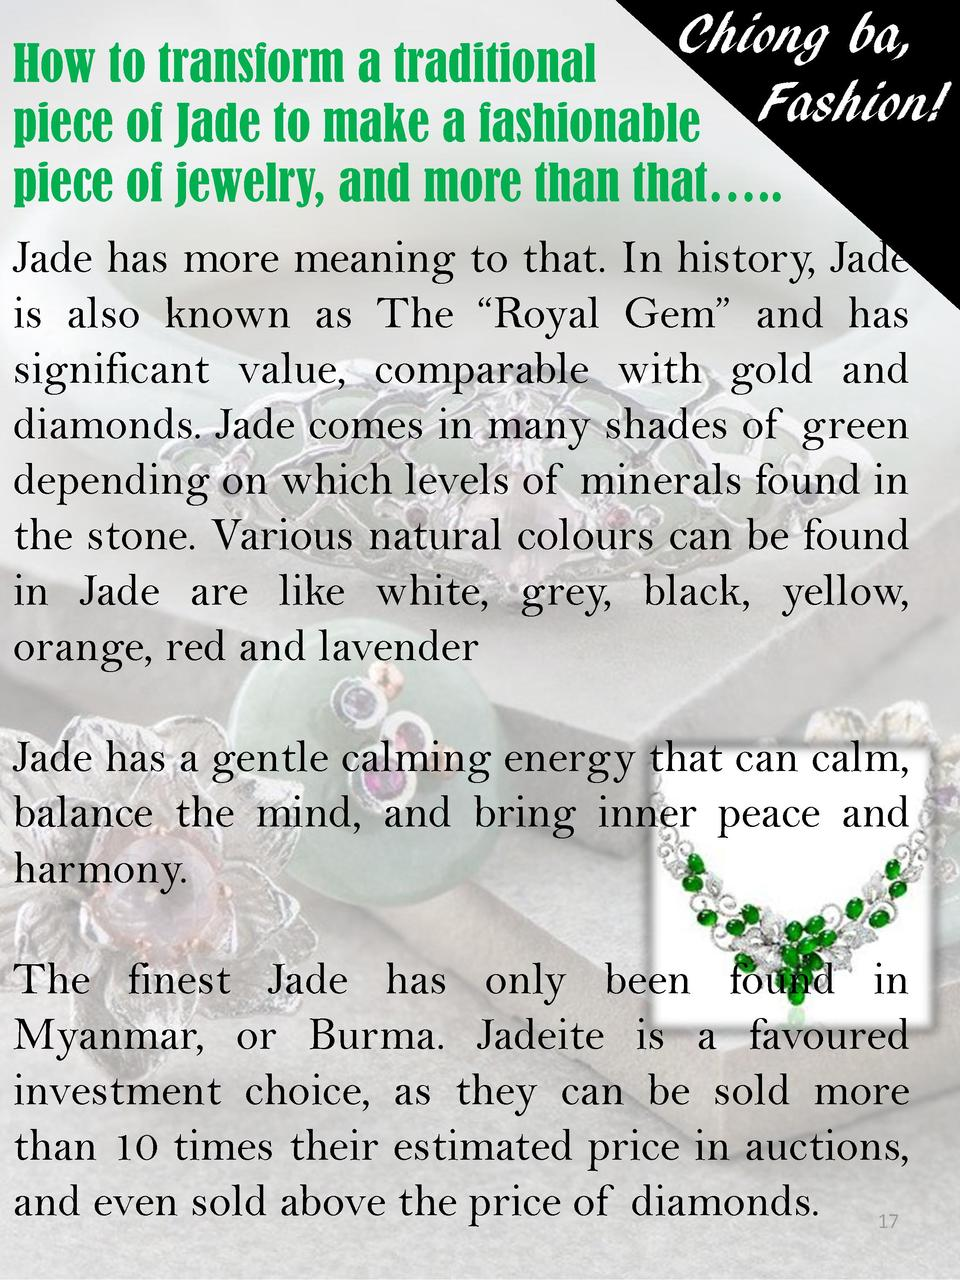 Chiong ba, How to transform a traditional piece of Jade to make a fashionable Fashion  piece of jewelry, and more than tha...